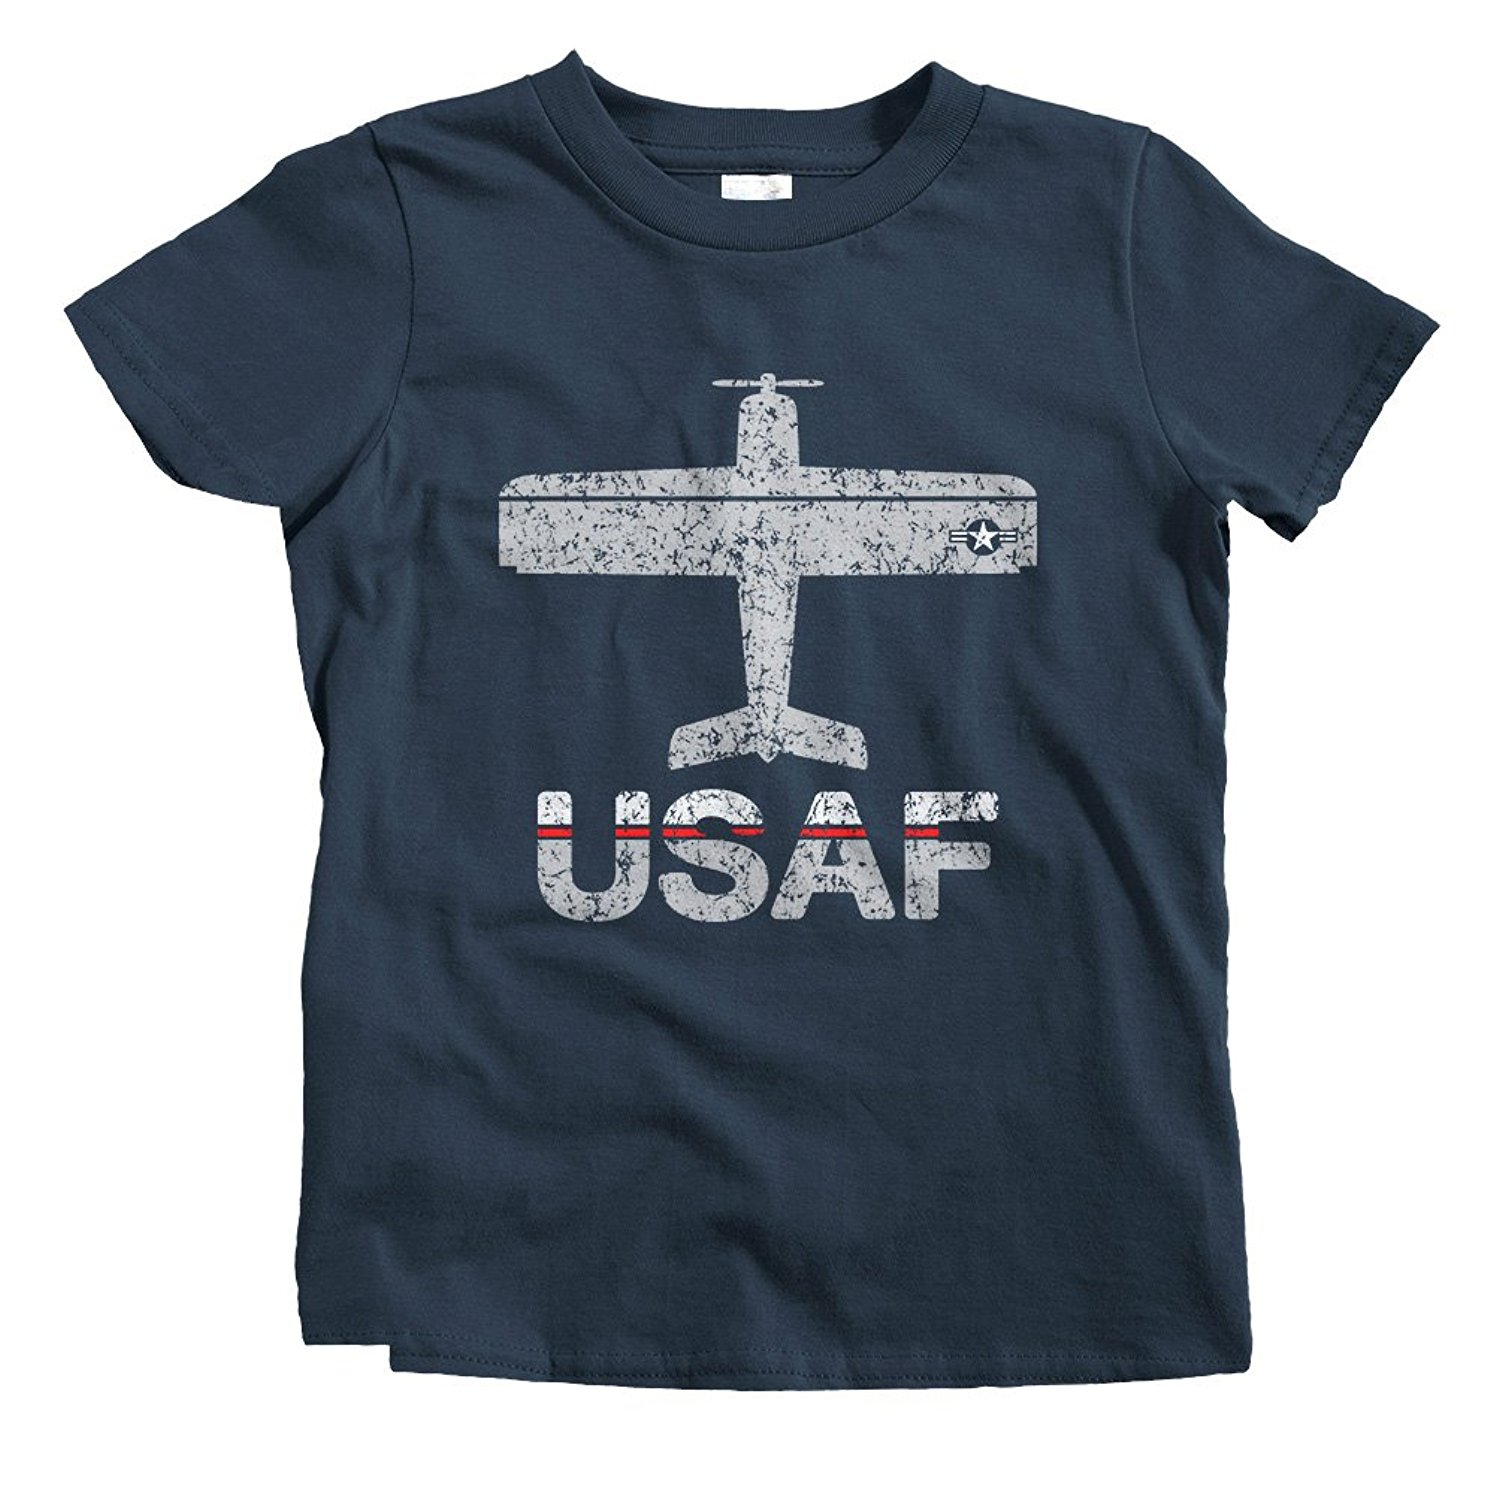 2019 Hot Sale 100% Cotton Smash Vintage Kids Fly <font><b>USAF</b></font> Air Force T-<font><b>Shirt</b></font> Summer Style Tee <font><b>Shirt</b></font> image